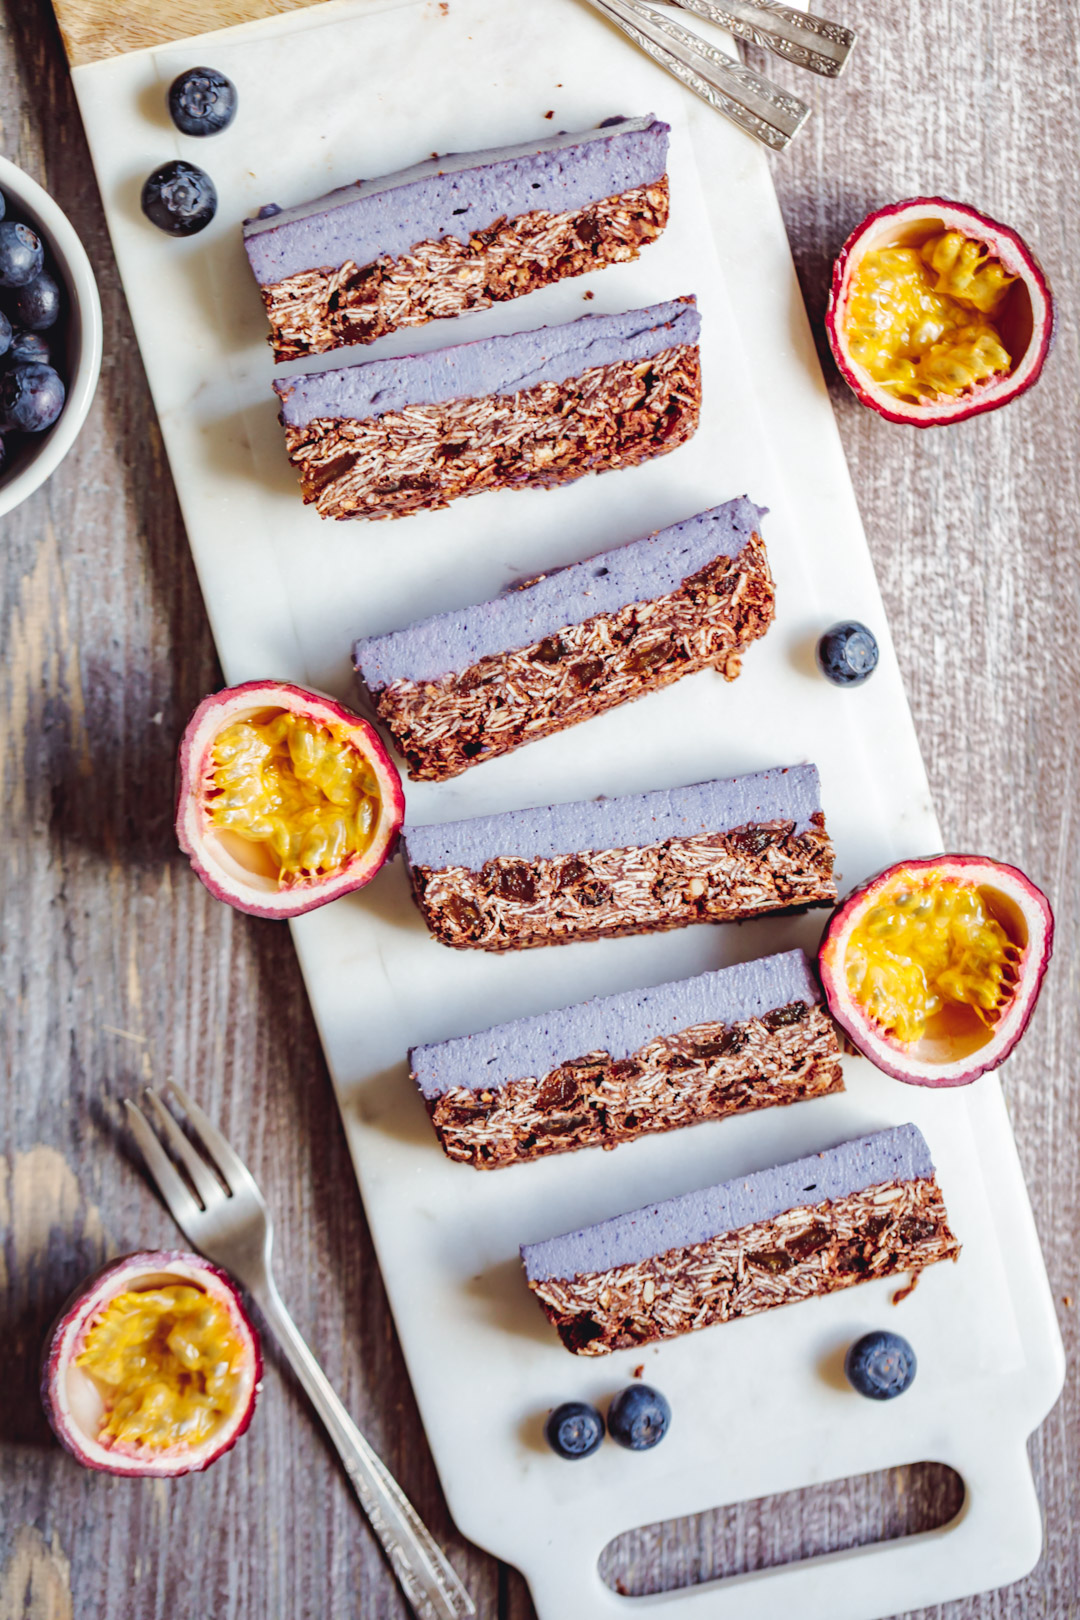 Vegan Cheesecake With Oat Chocolate Based